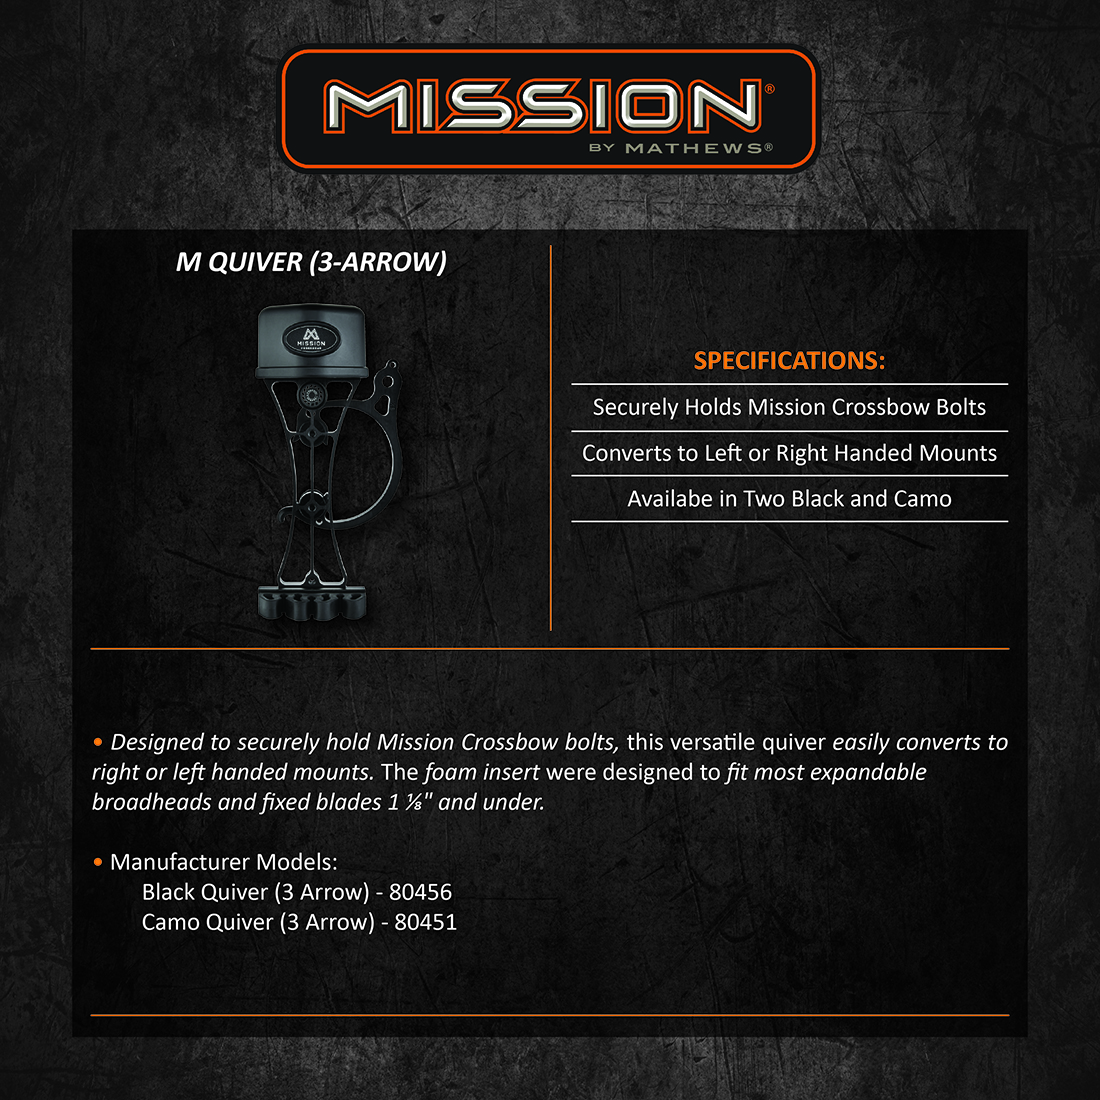 Mission_M_Quiver_3Arrow_Product_Description